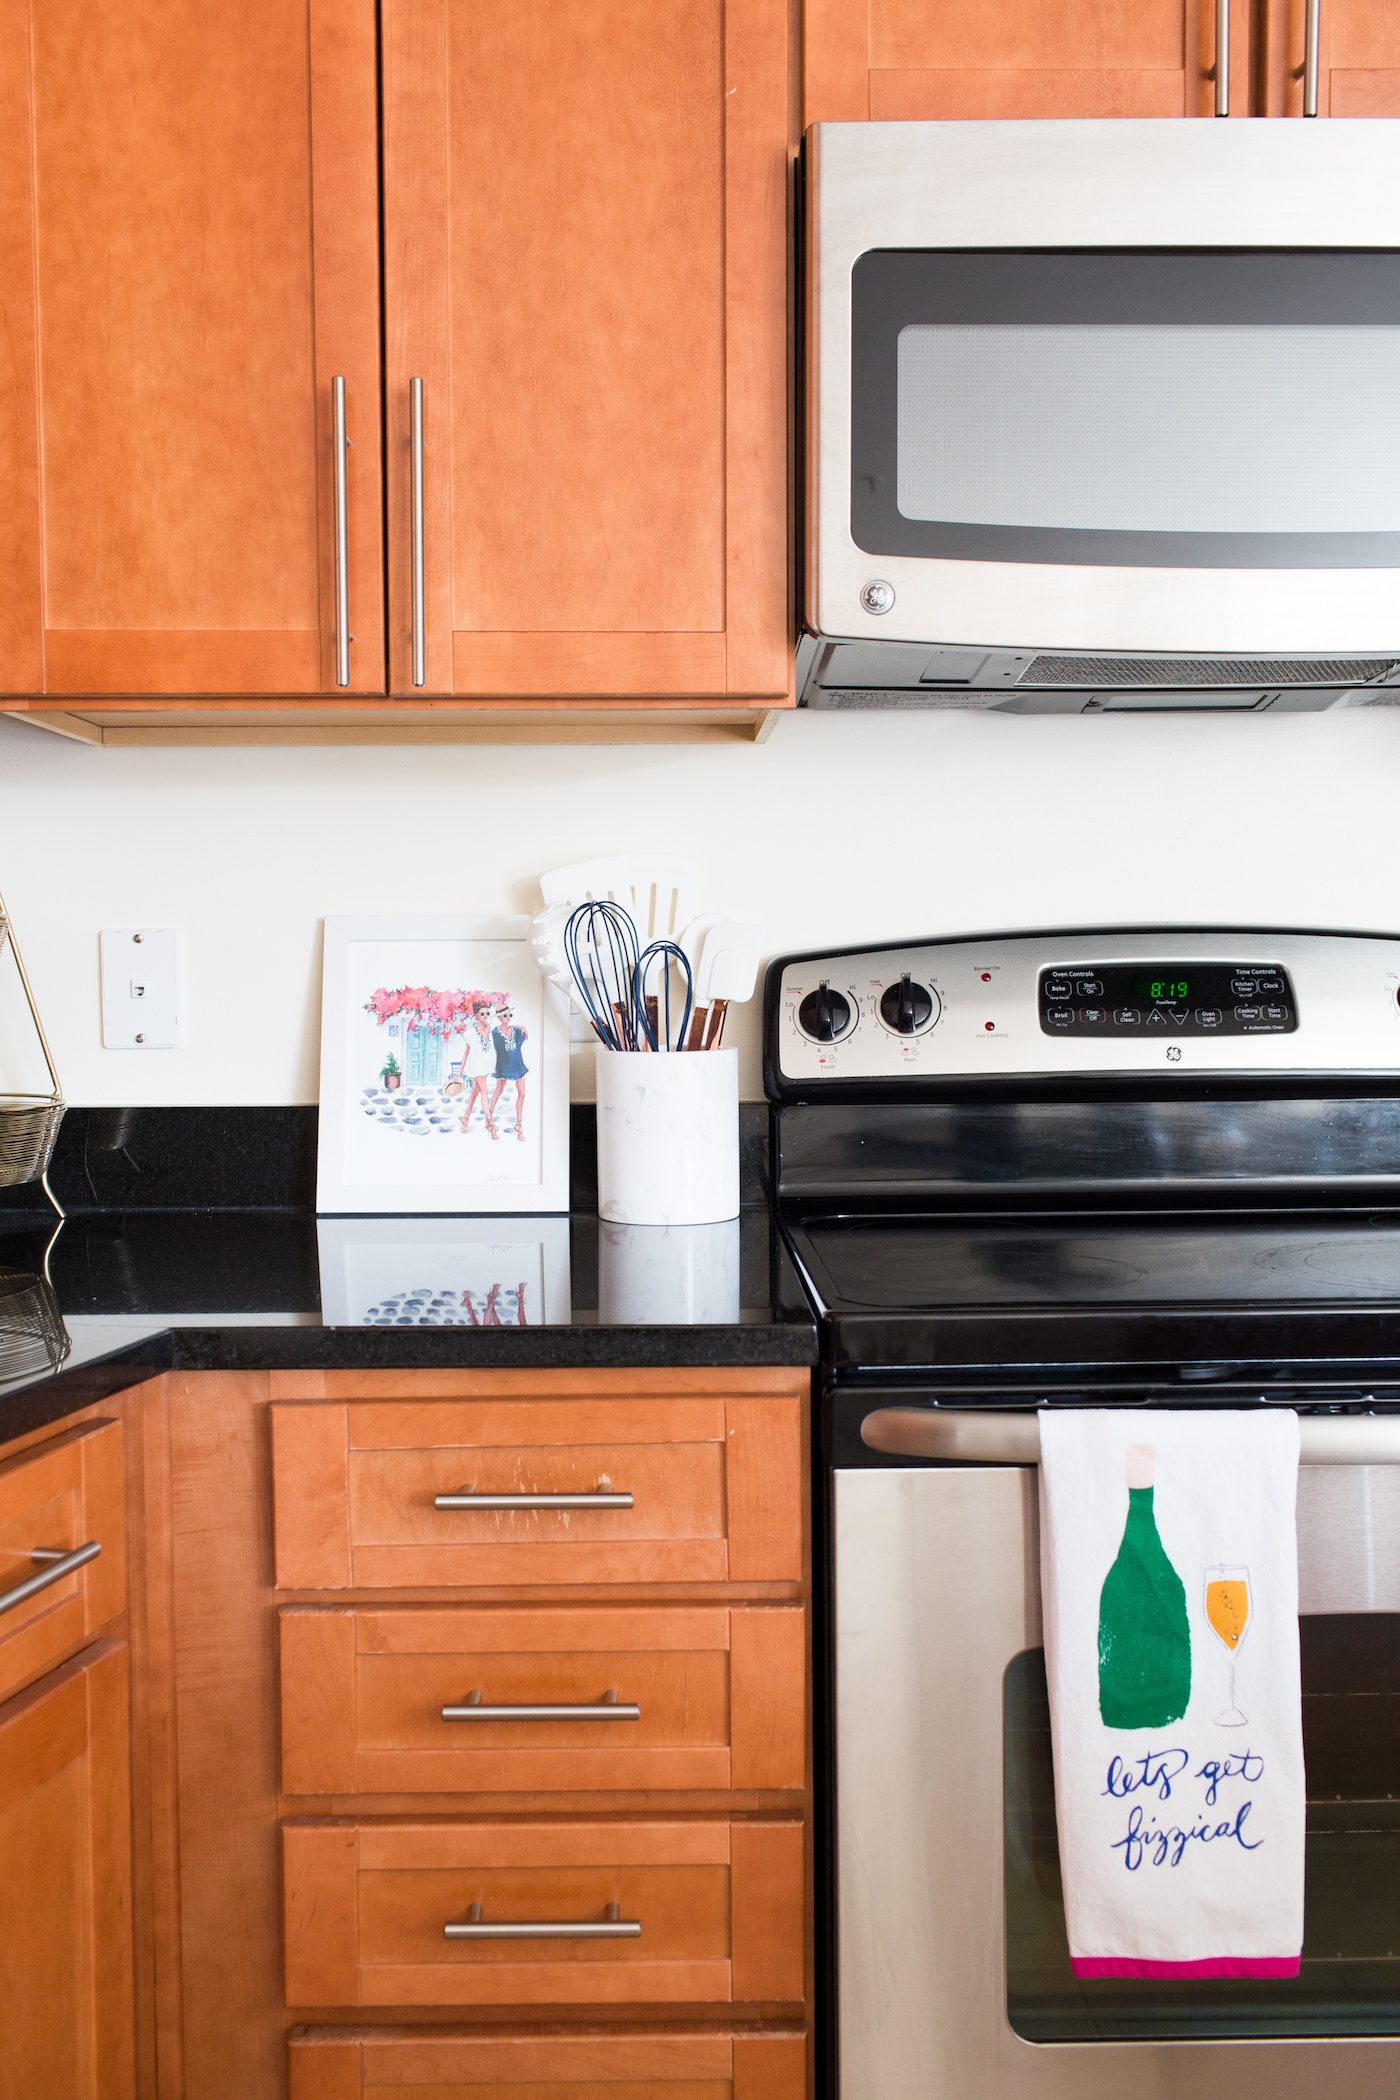 Apartment Kitchen Decor Ideas | A Touch of Teal